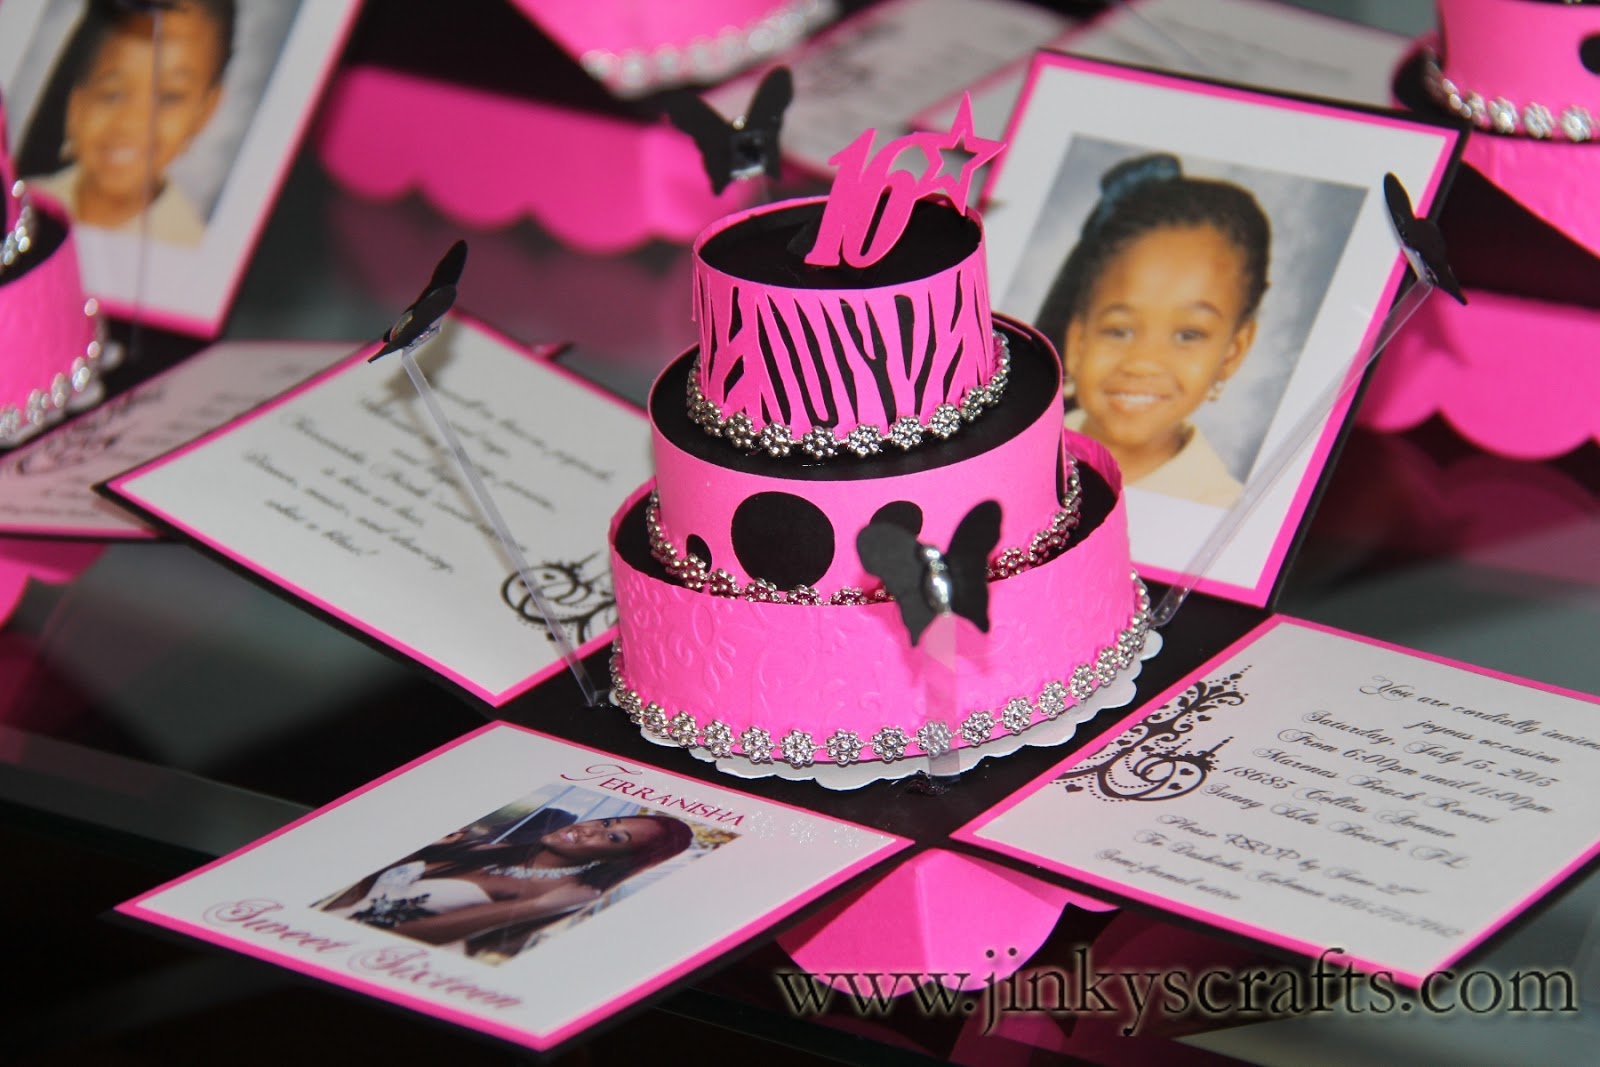 Ideas For Invitations : Jinky s crafts designs may